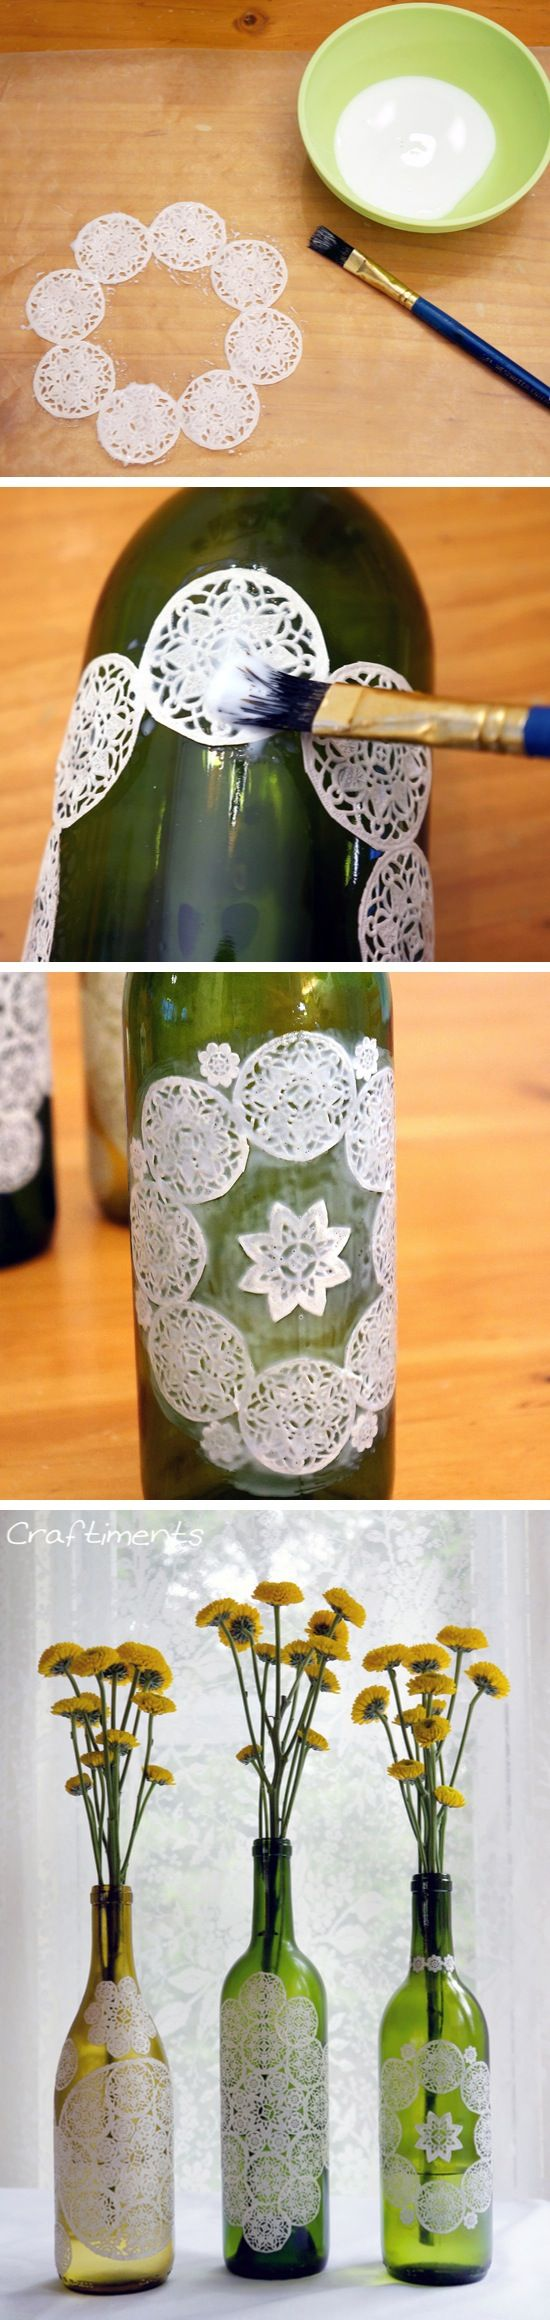 Paper Doily Decoupaged Bottles #DIY #Crafts